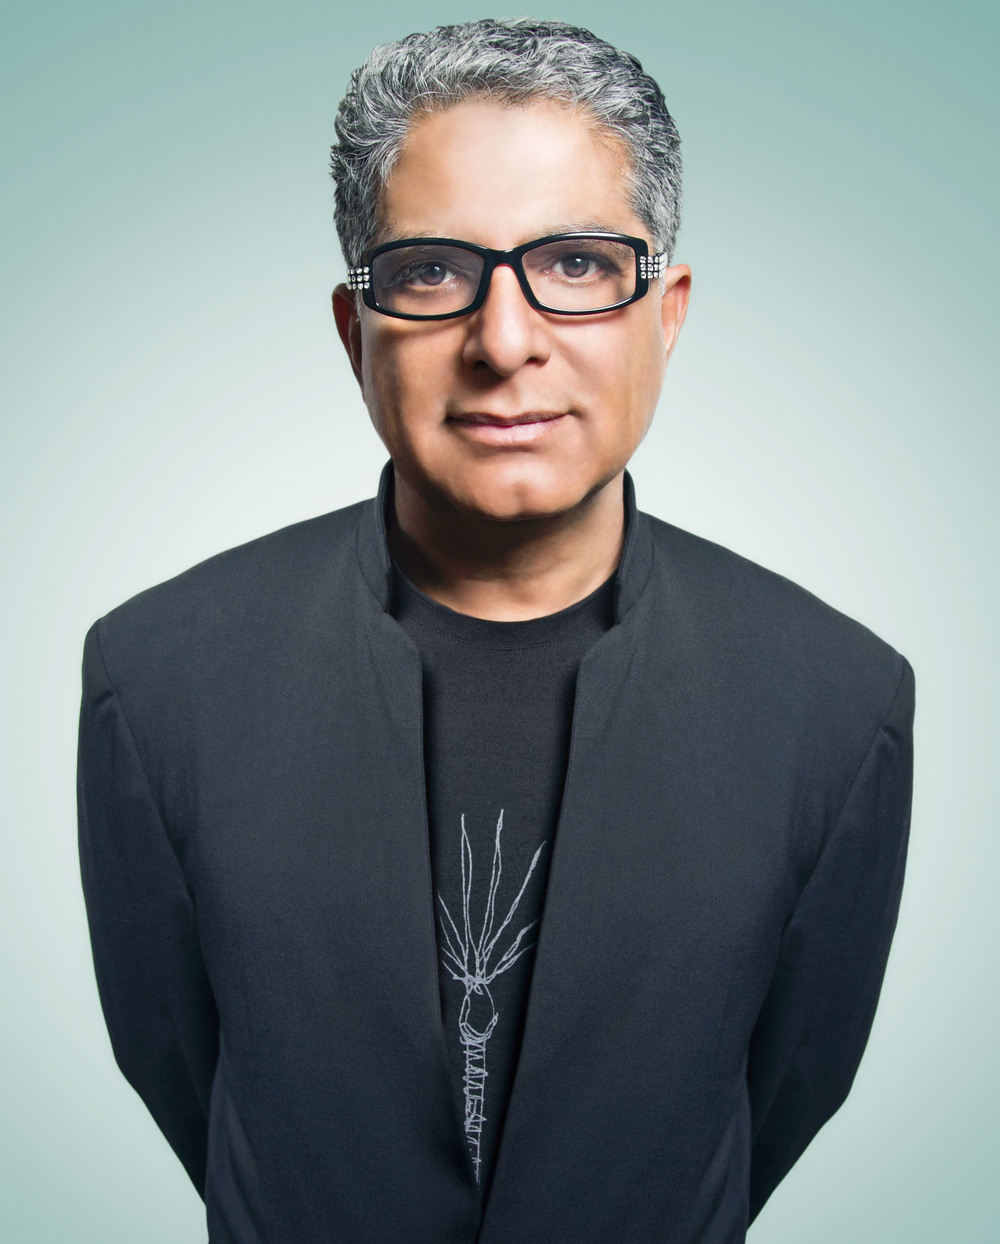 IMG_9378-Deepak-Chopra-new-photo.jpg